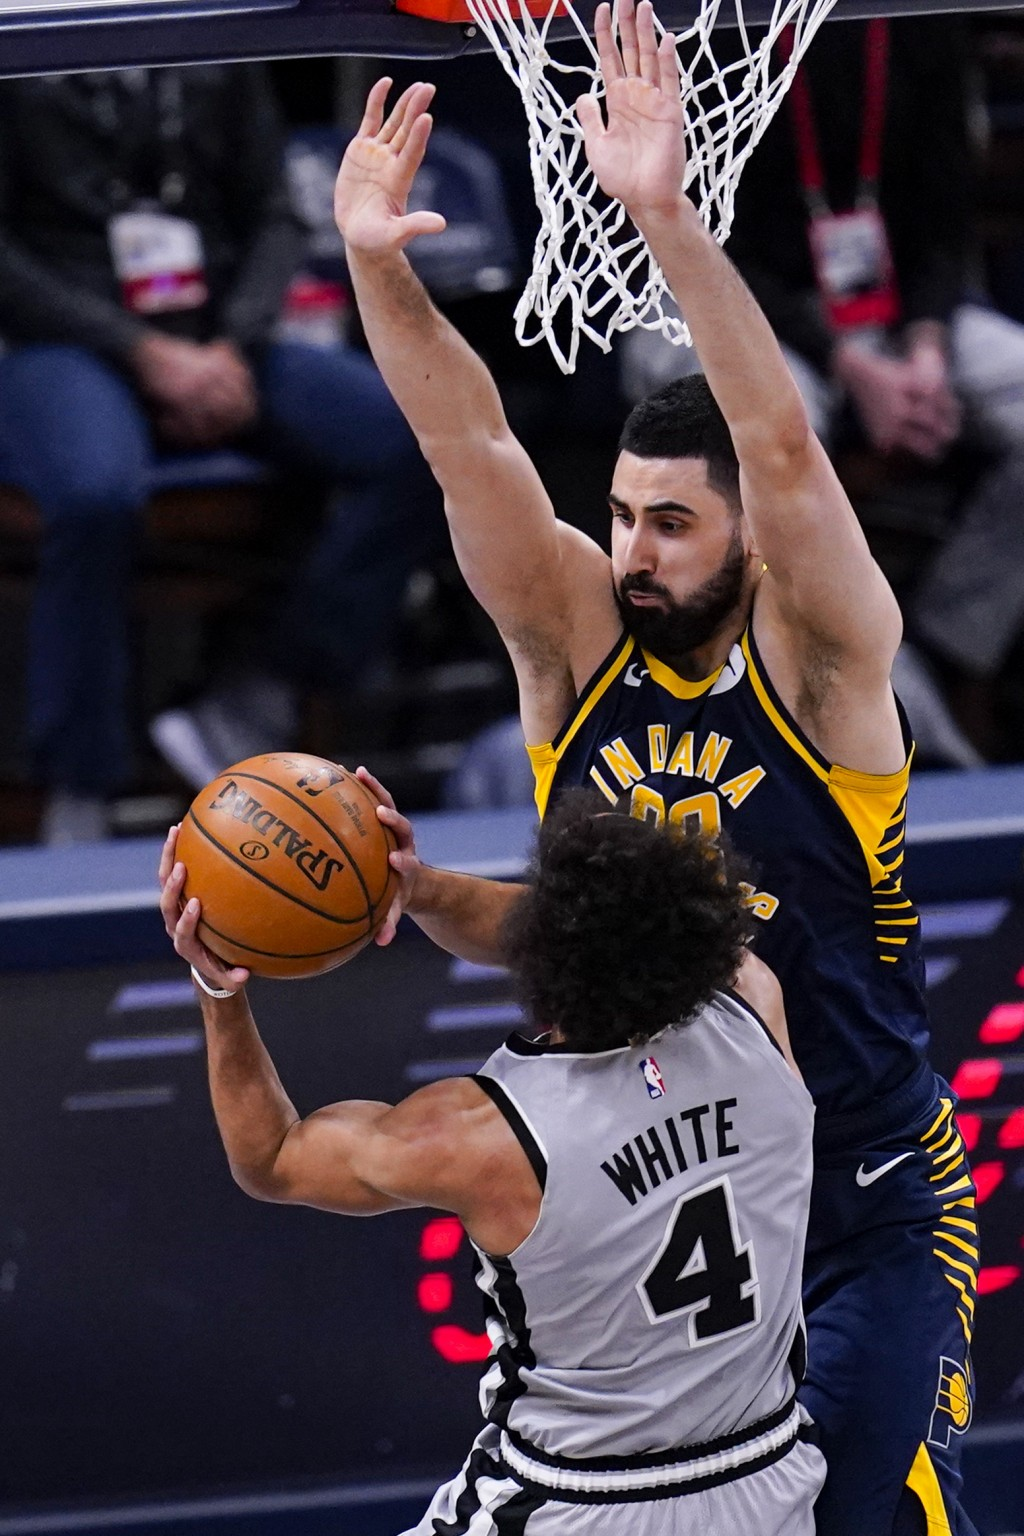 Indiana Pacers center Goga Bitadze (88) stops the shot of San Antonio Spurs guard Derrick White (4) during the first half of an NBA basketball game in...